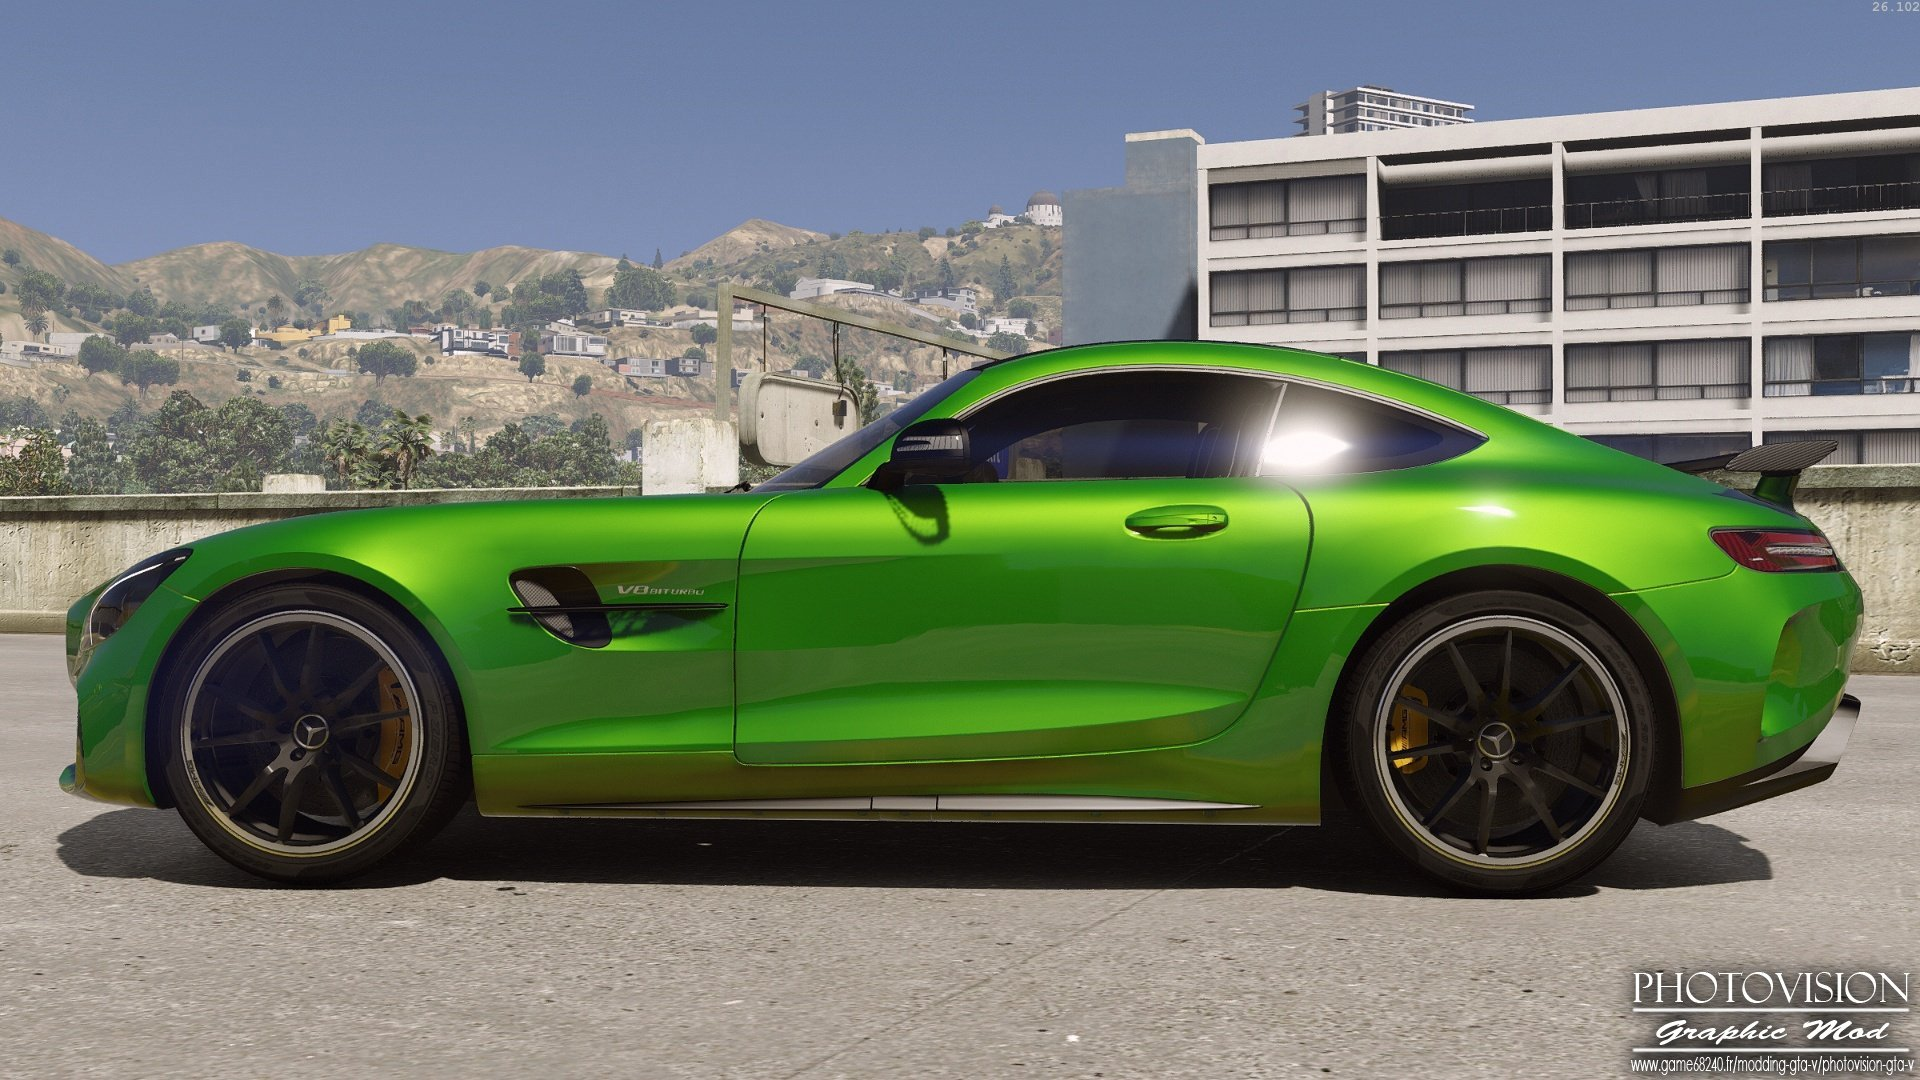 https://img.gta5-mods.com/q95/images/mercedes-benz-amg-gt-r-2017/d1e847-15.jpg